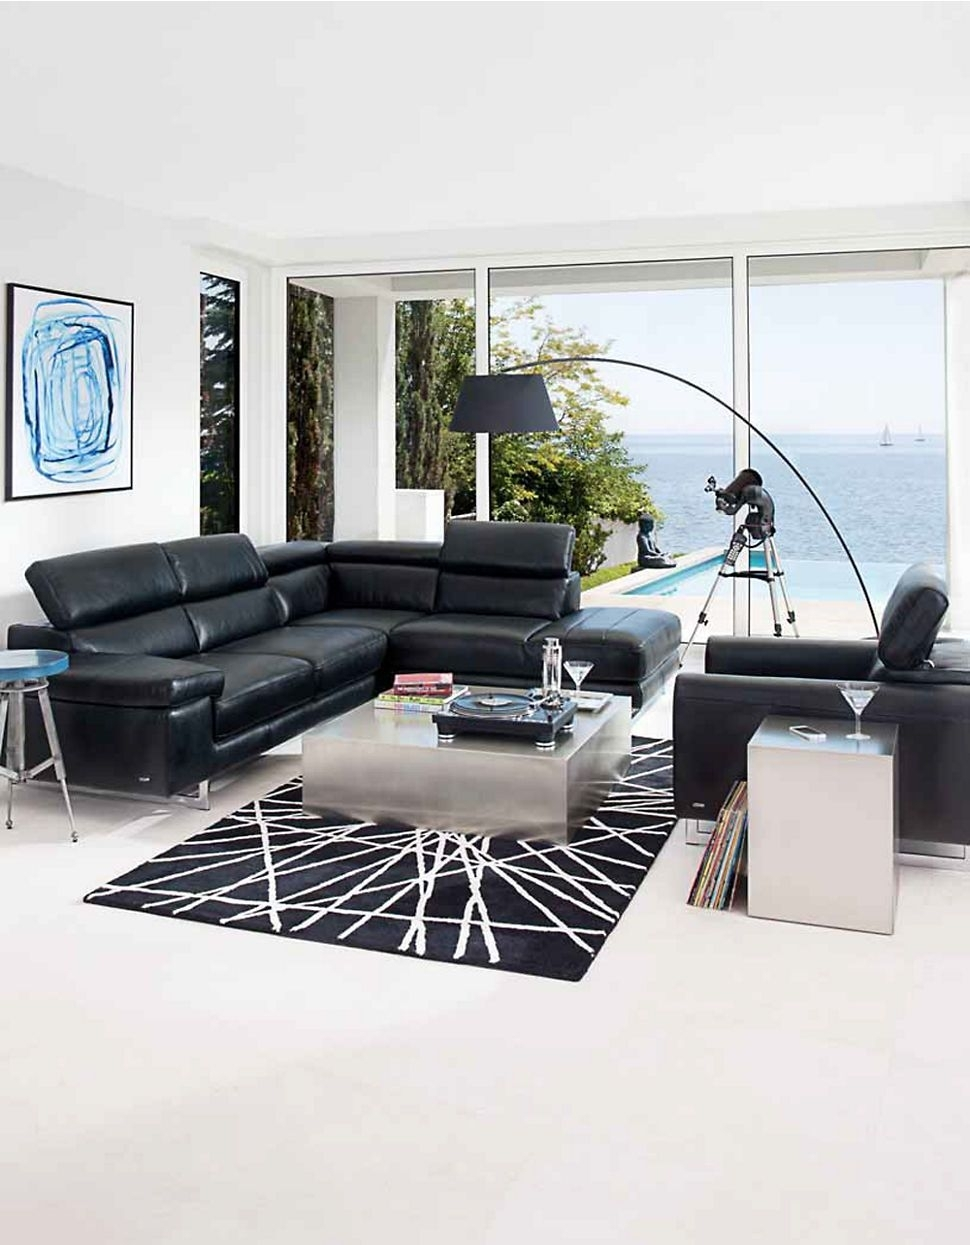 Umbria Sectional Sofanatuzzi Editions | Hudson's Bay | House Pertaining To The Bay Sectional Sofas (Photo 3 of 10)